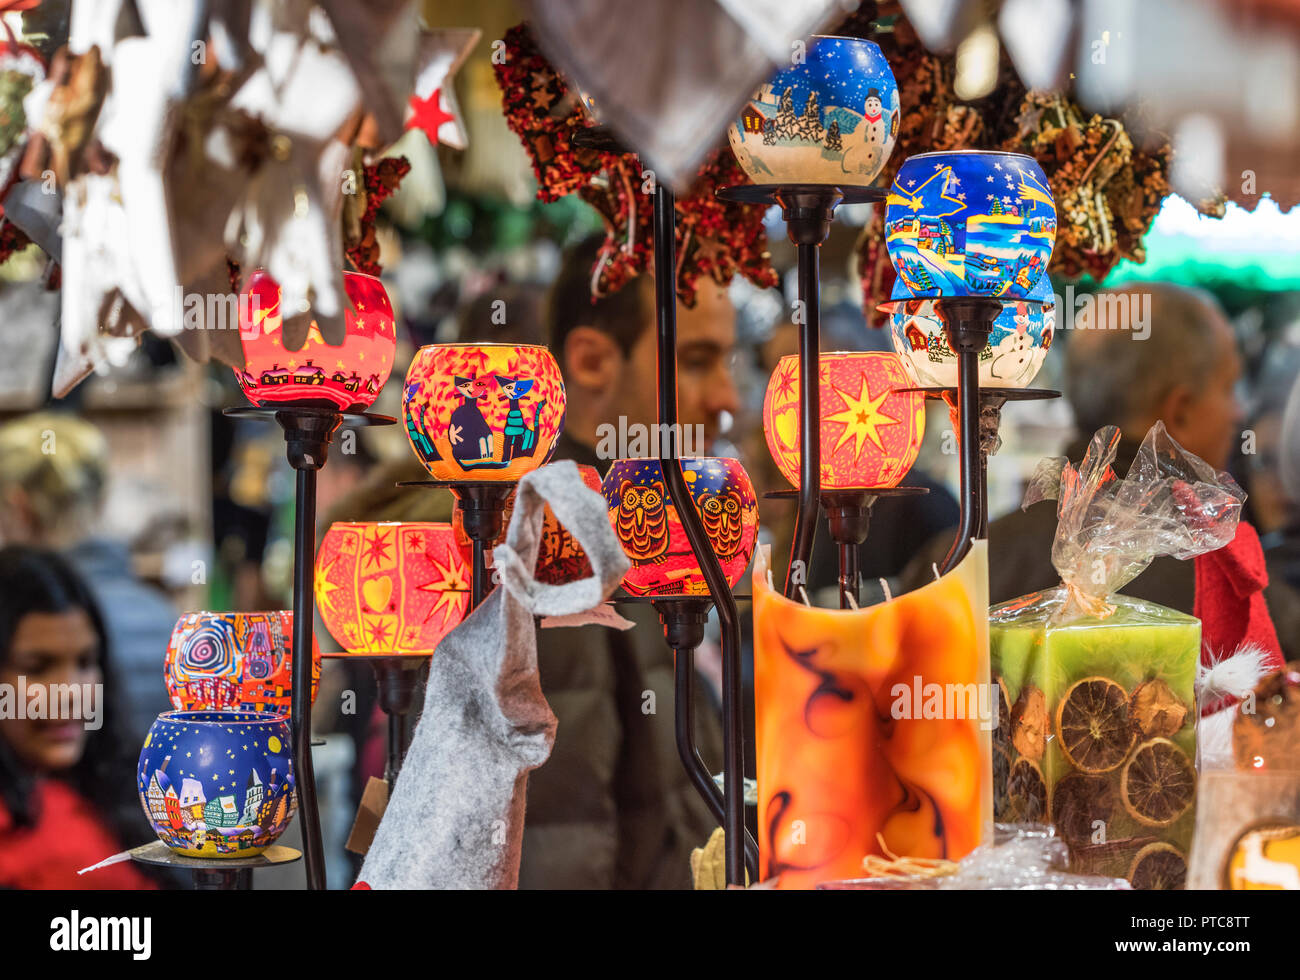 Christmas decorations At Fiera Milano - the international fair - Stock Image